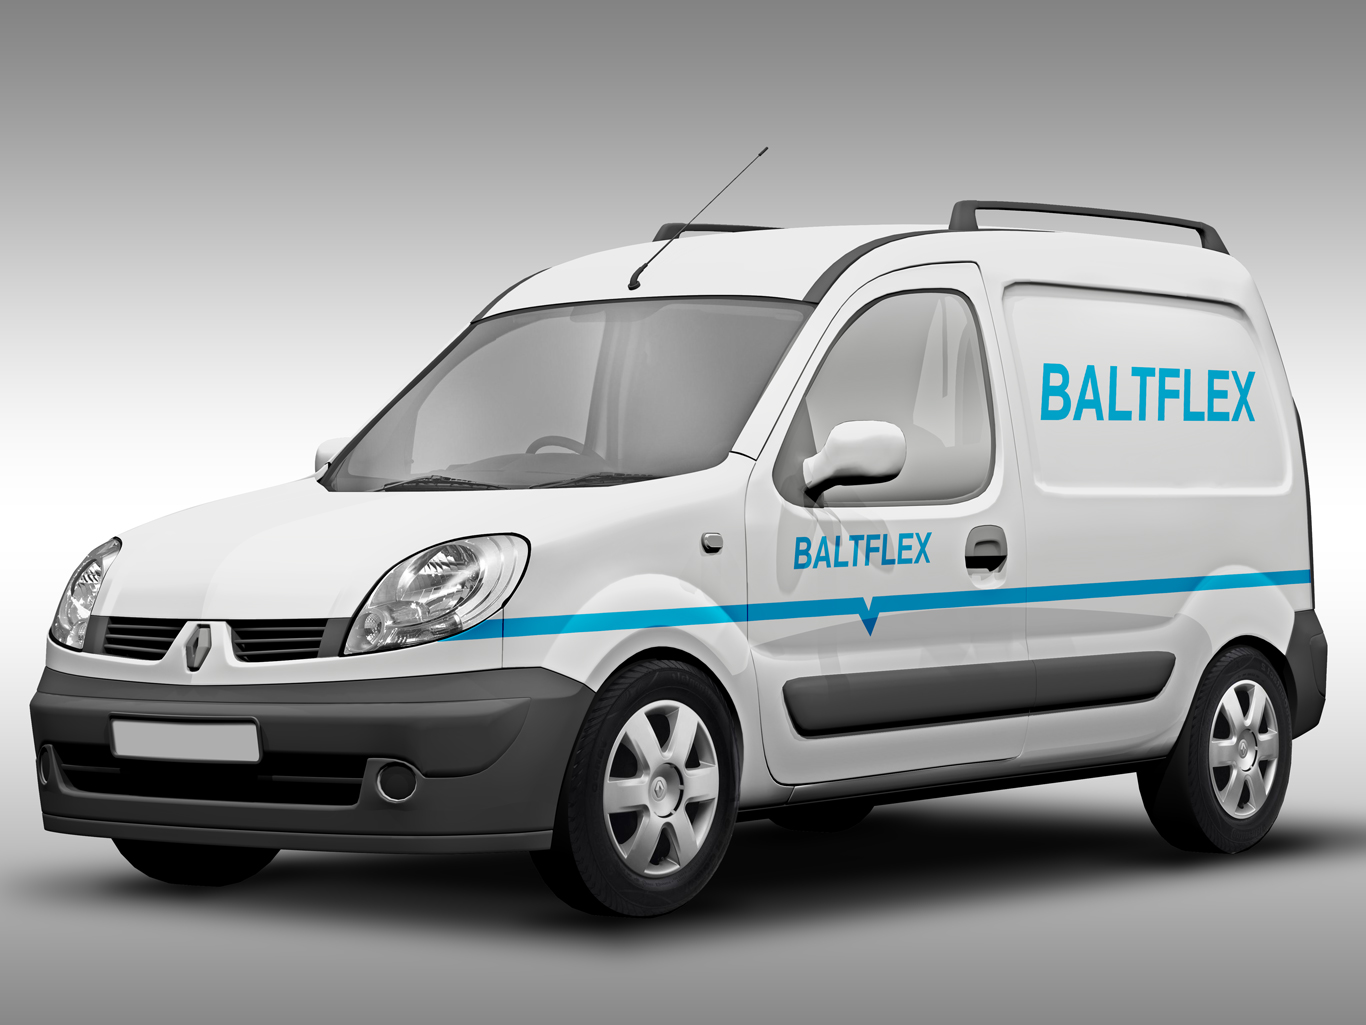 baltflex-GemGfx_Vehicle_Branding_Mockup